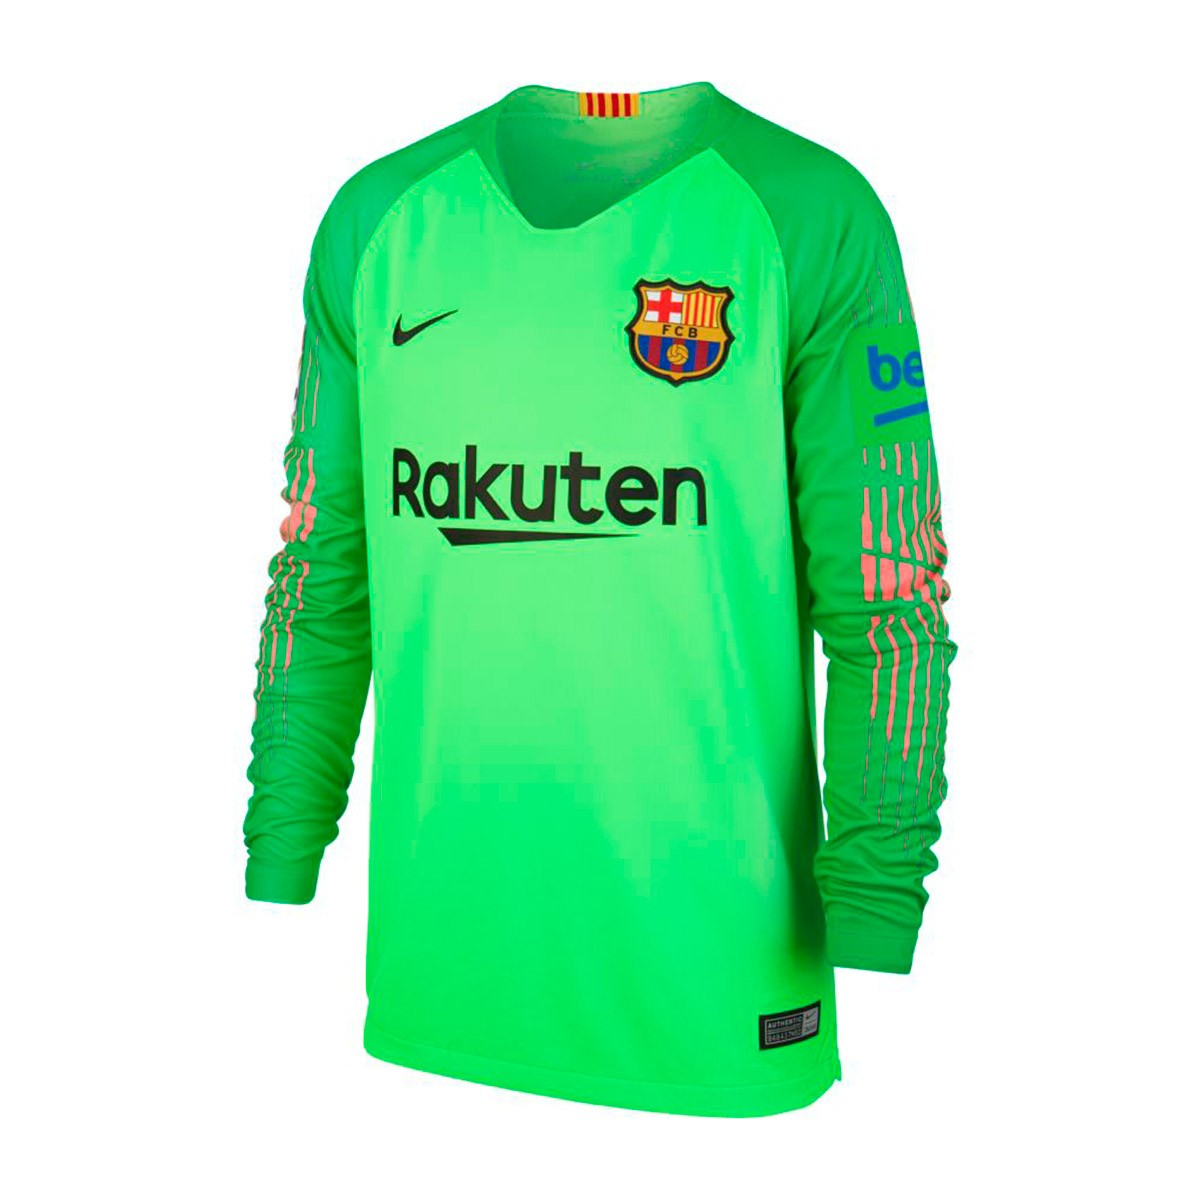 818b4074768 Jersey Nike Kids Goalkeeper FC Barcelona Stadium 2018-2019 Green ...